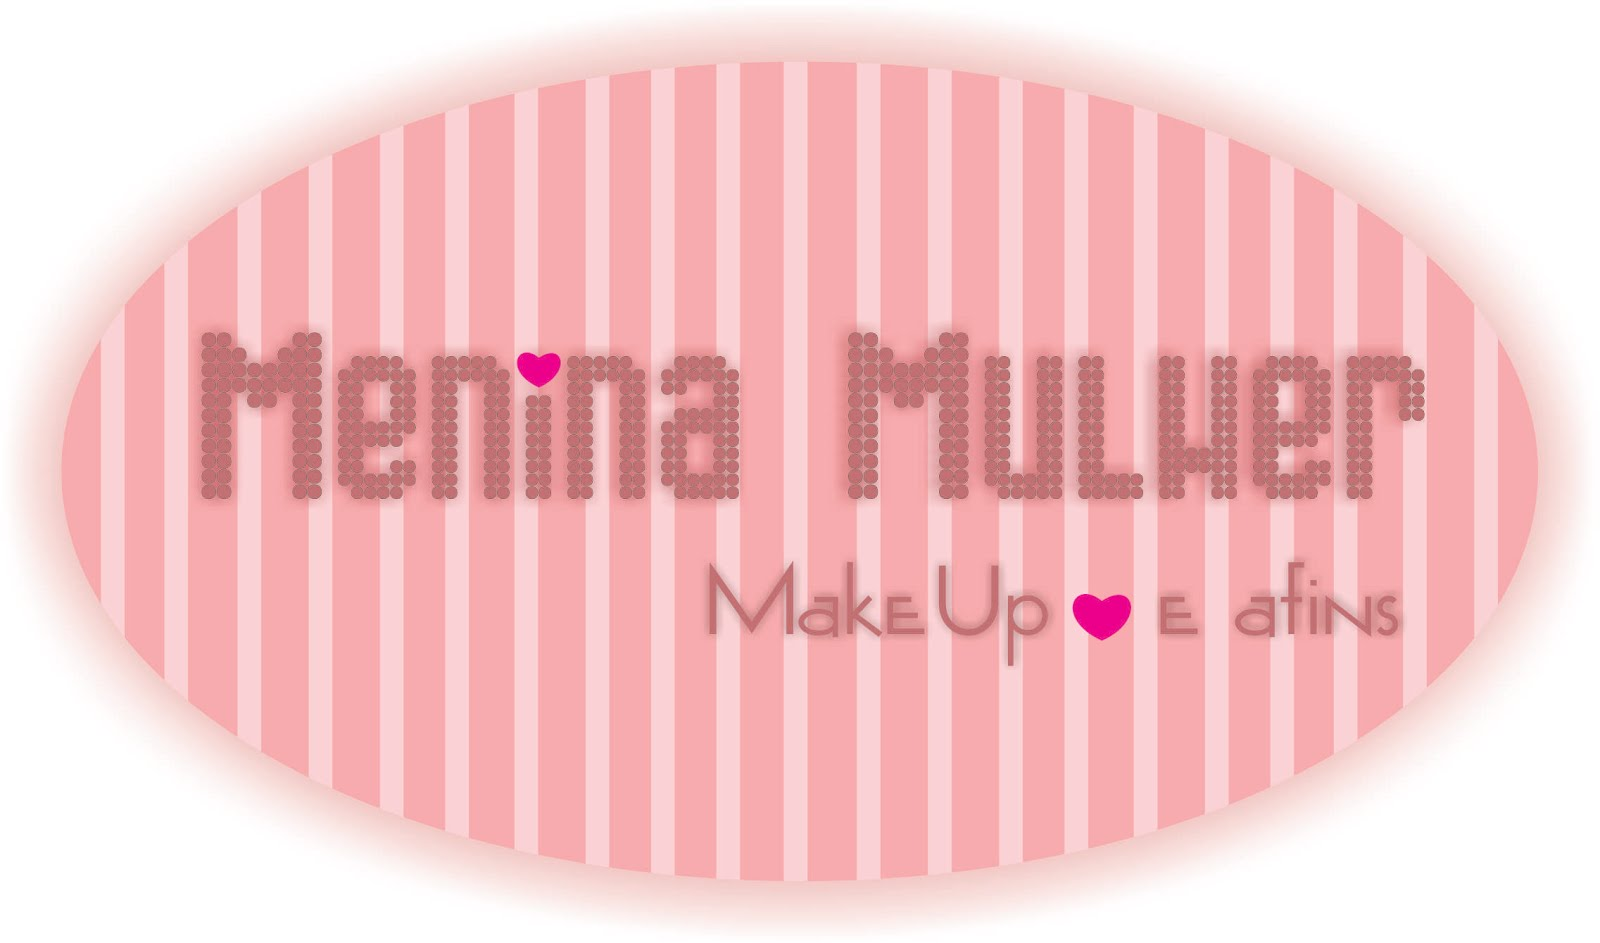 Menina Mulher Make Up